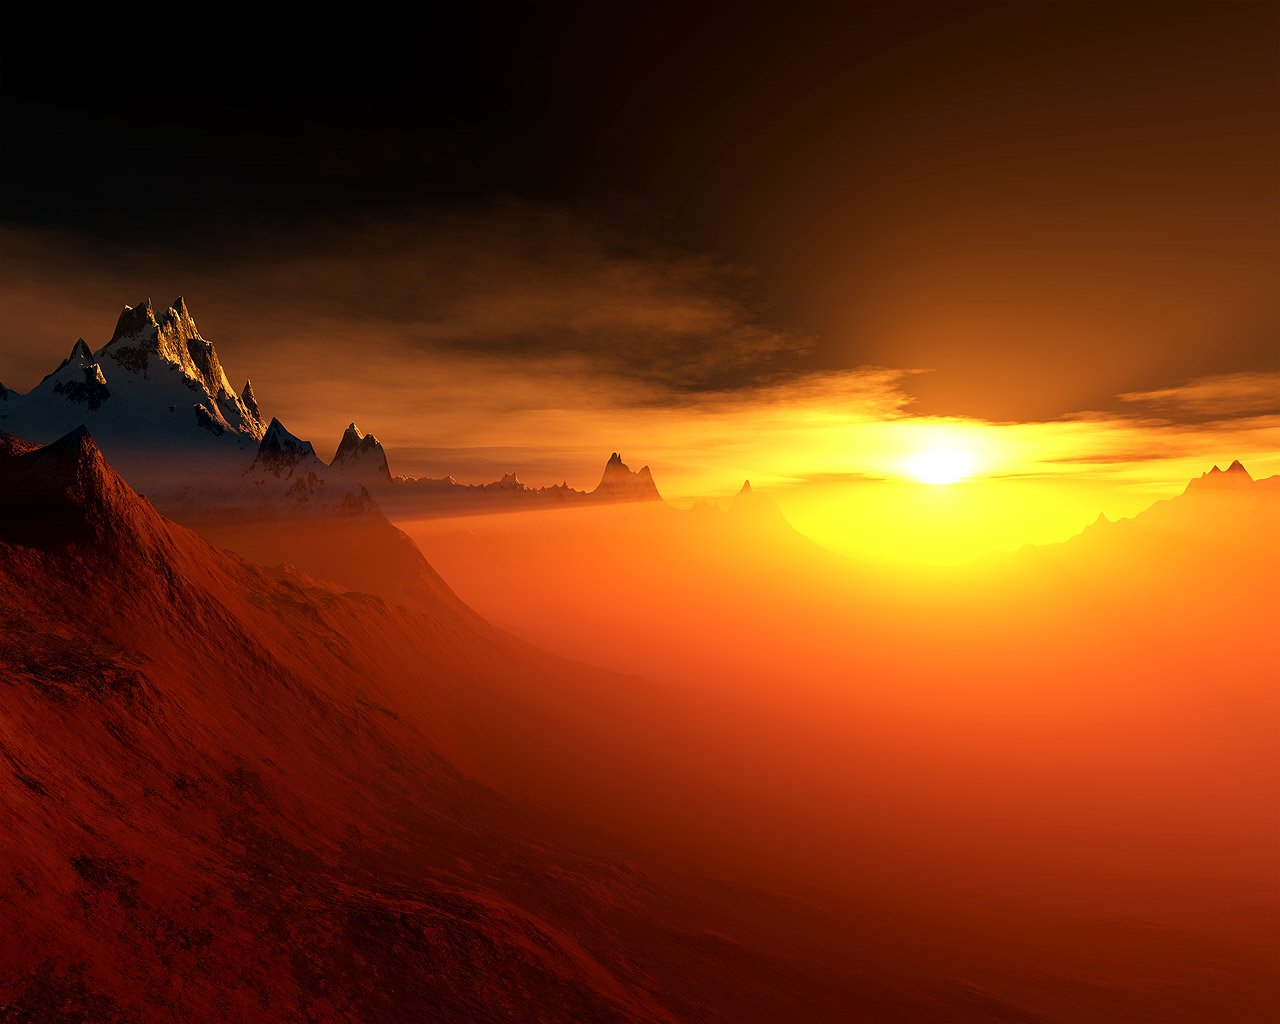 CGI - Real World  Sun Mountain Wallpaper